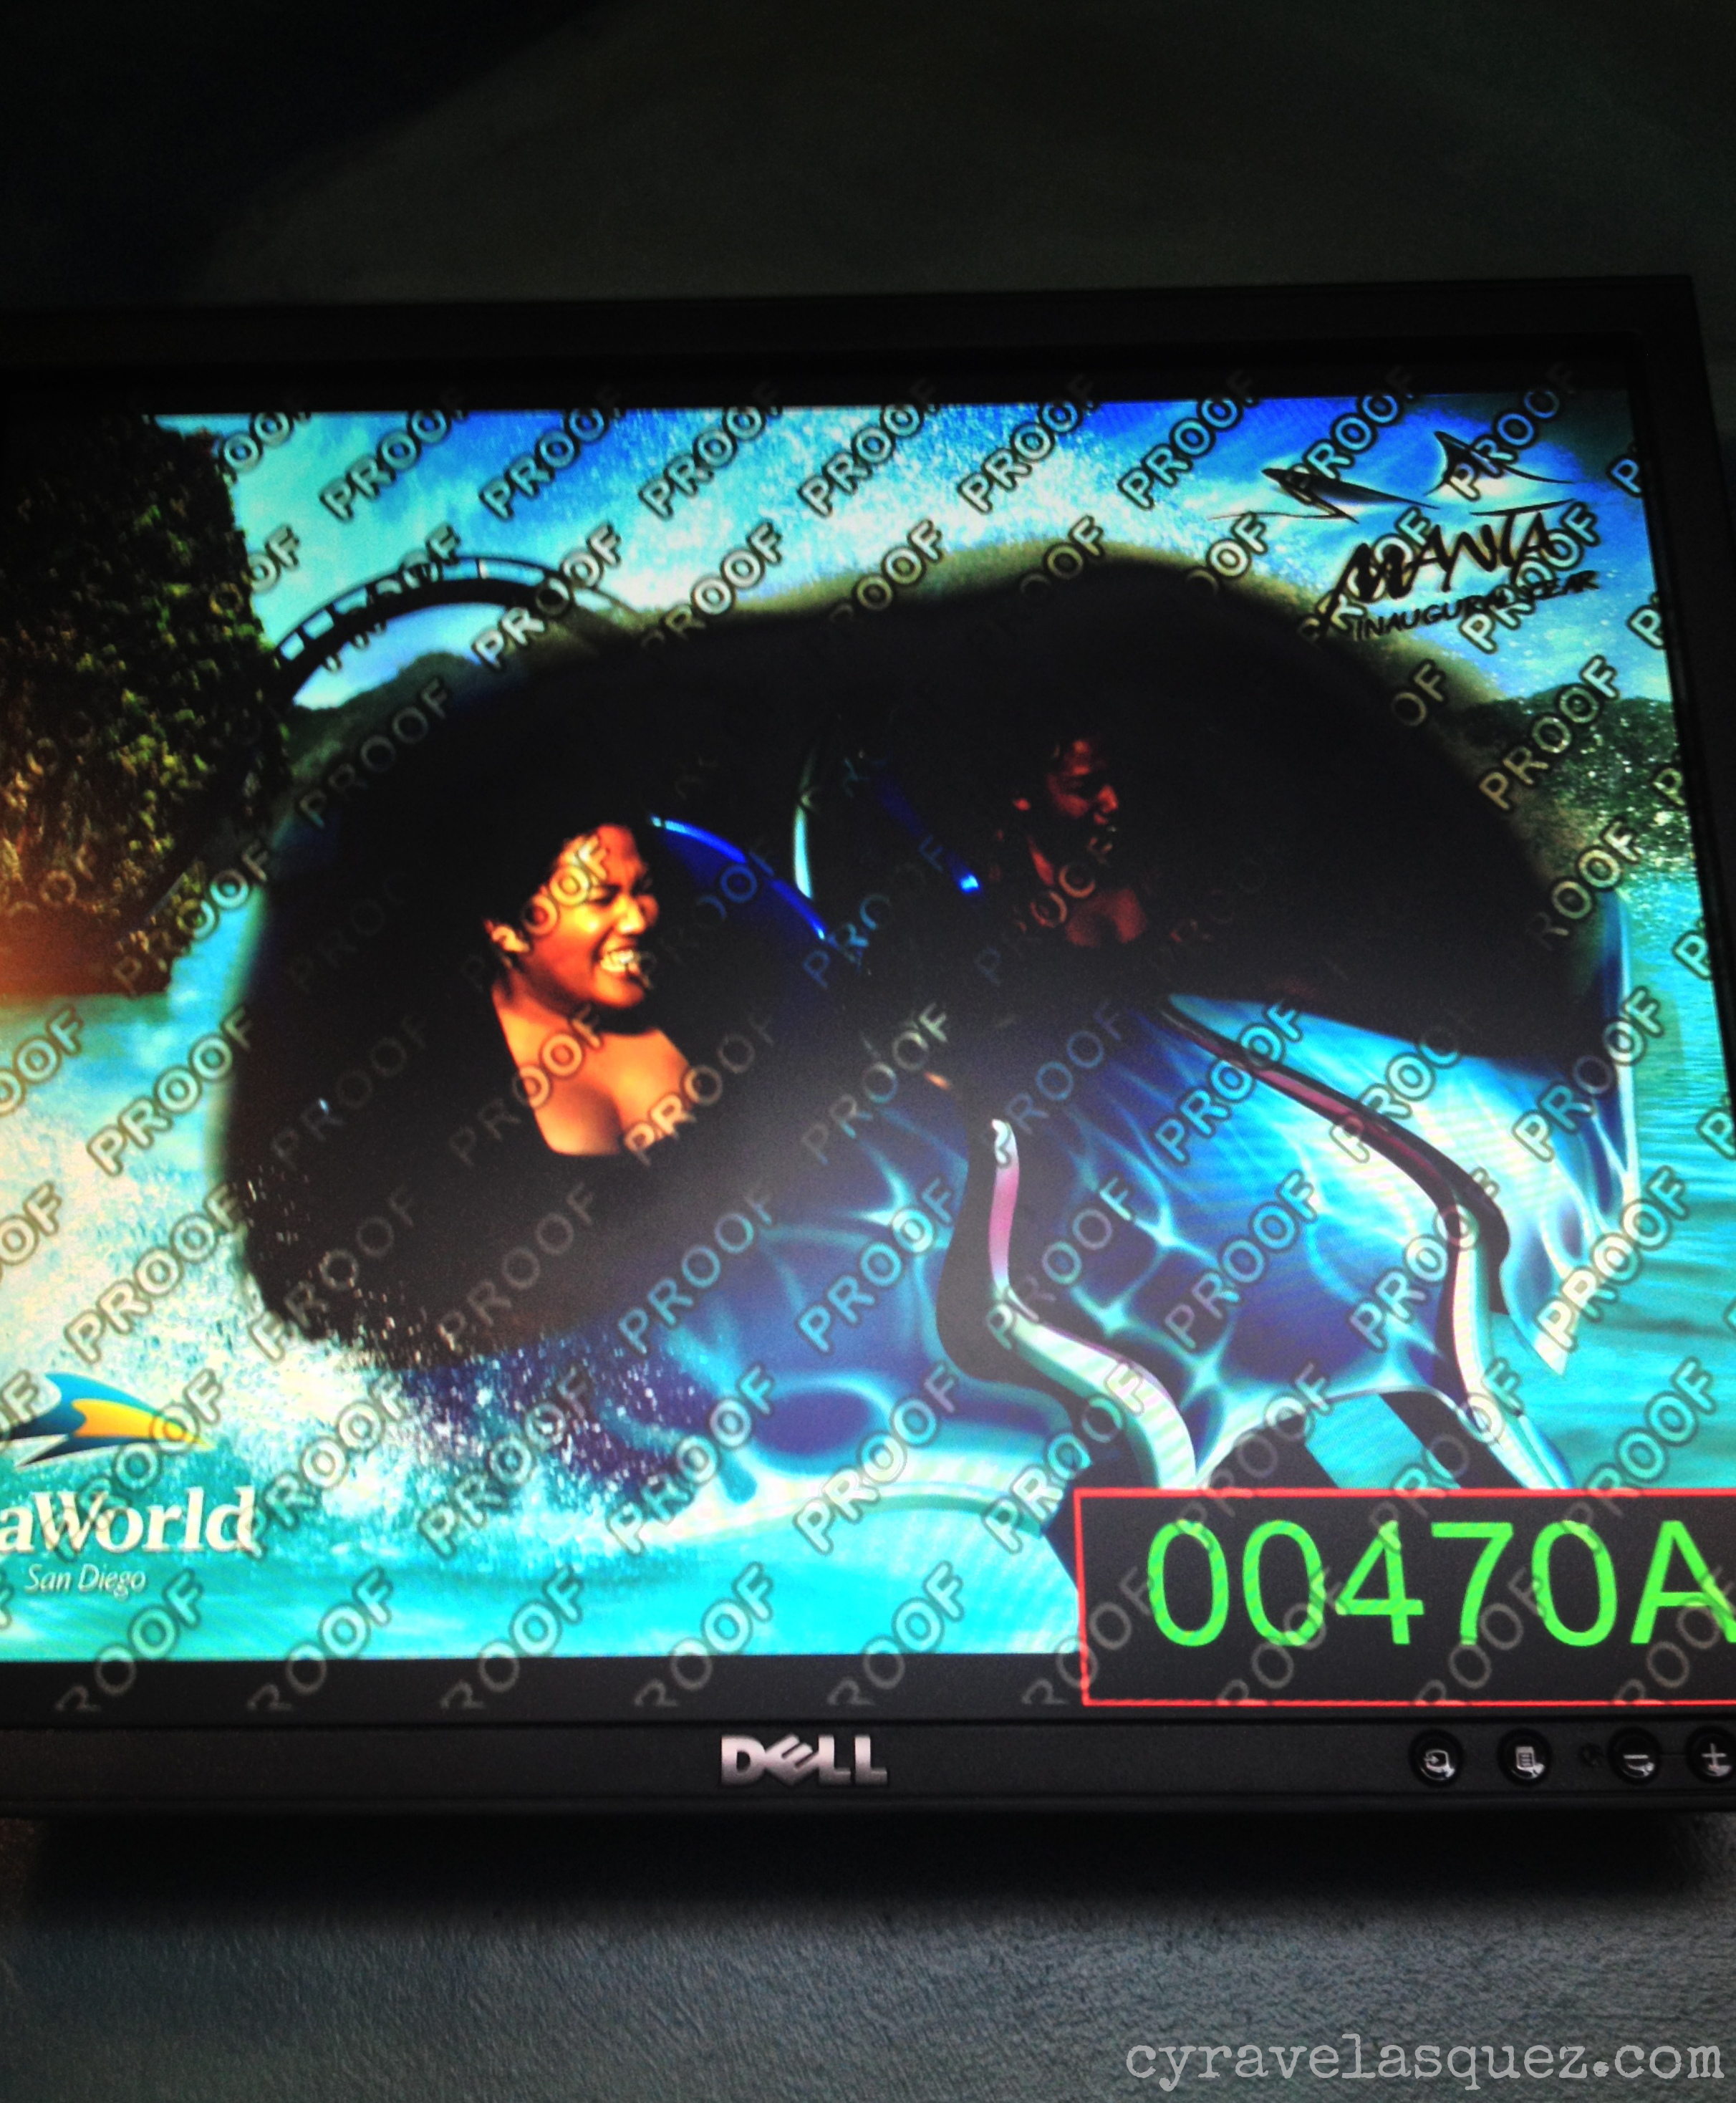 Cyra and Alarisse Velasquez riding the Manta at SeaWorld San Diego.